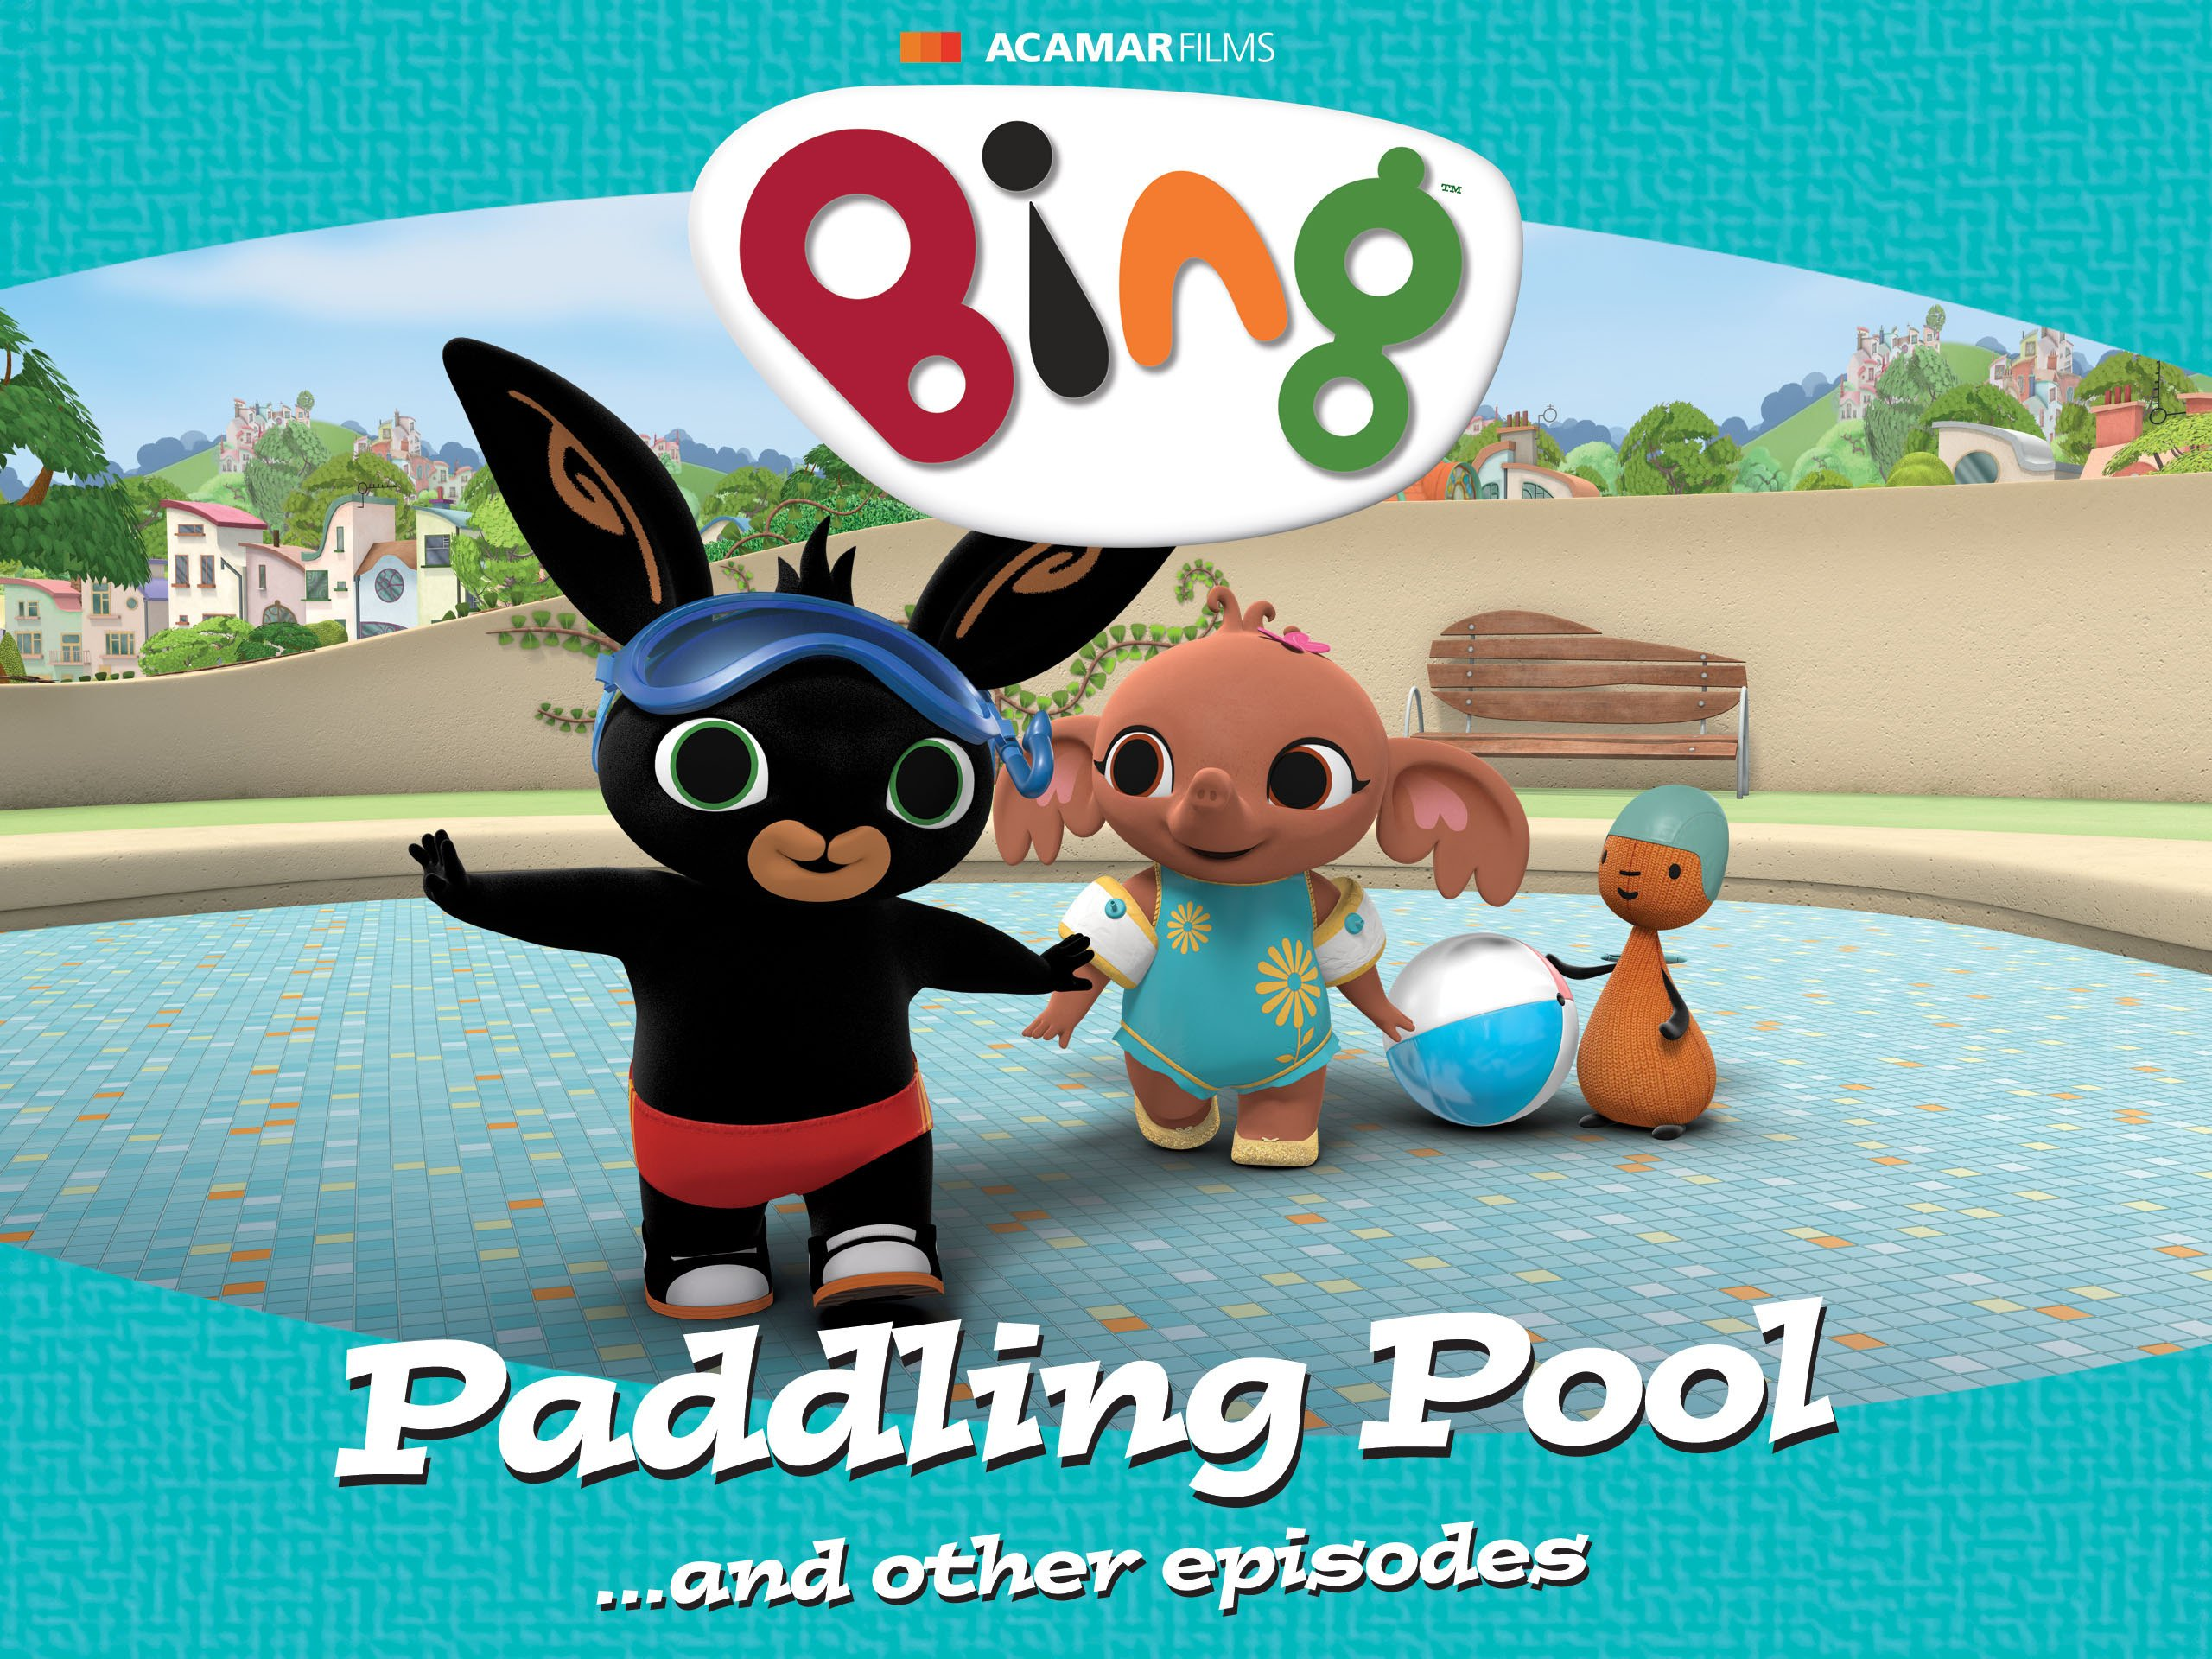 Bing Paddling Pool & Other Episodes